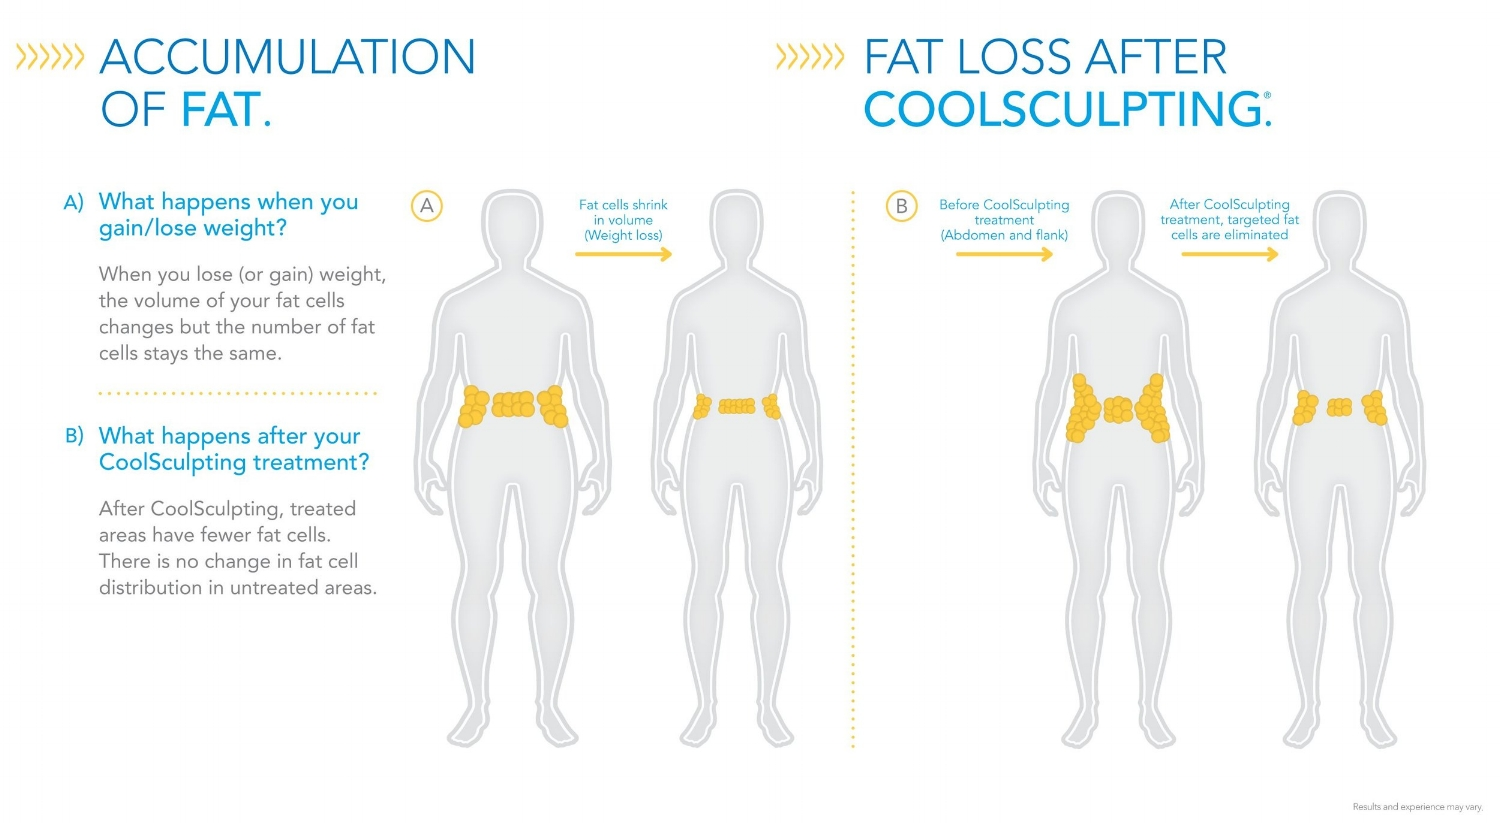 Accumulation-of-Fat-Fat-Loss-After-CoolSculpting.jpg